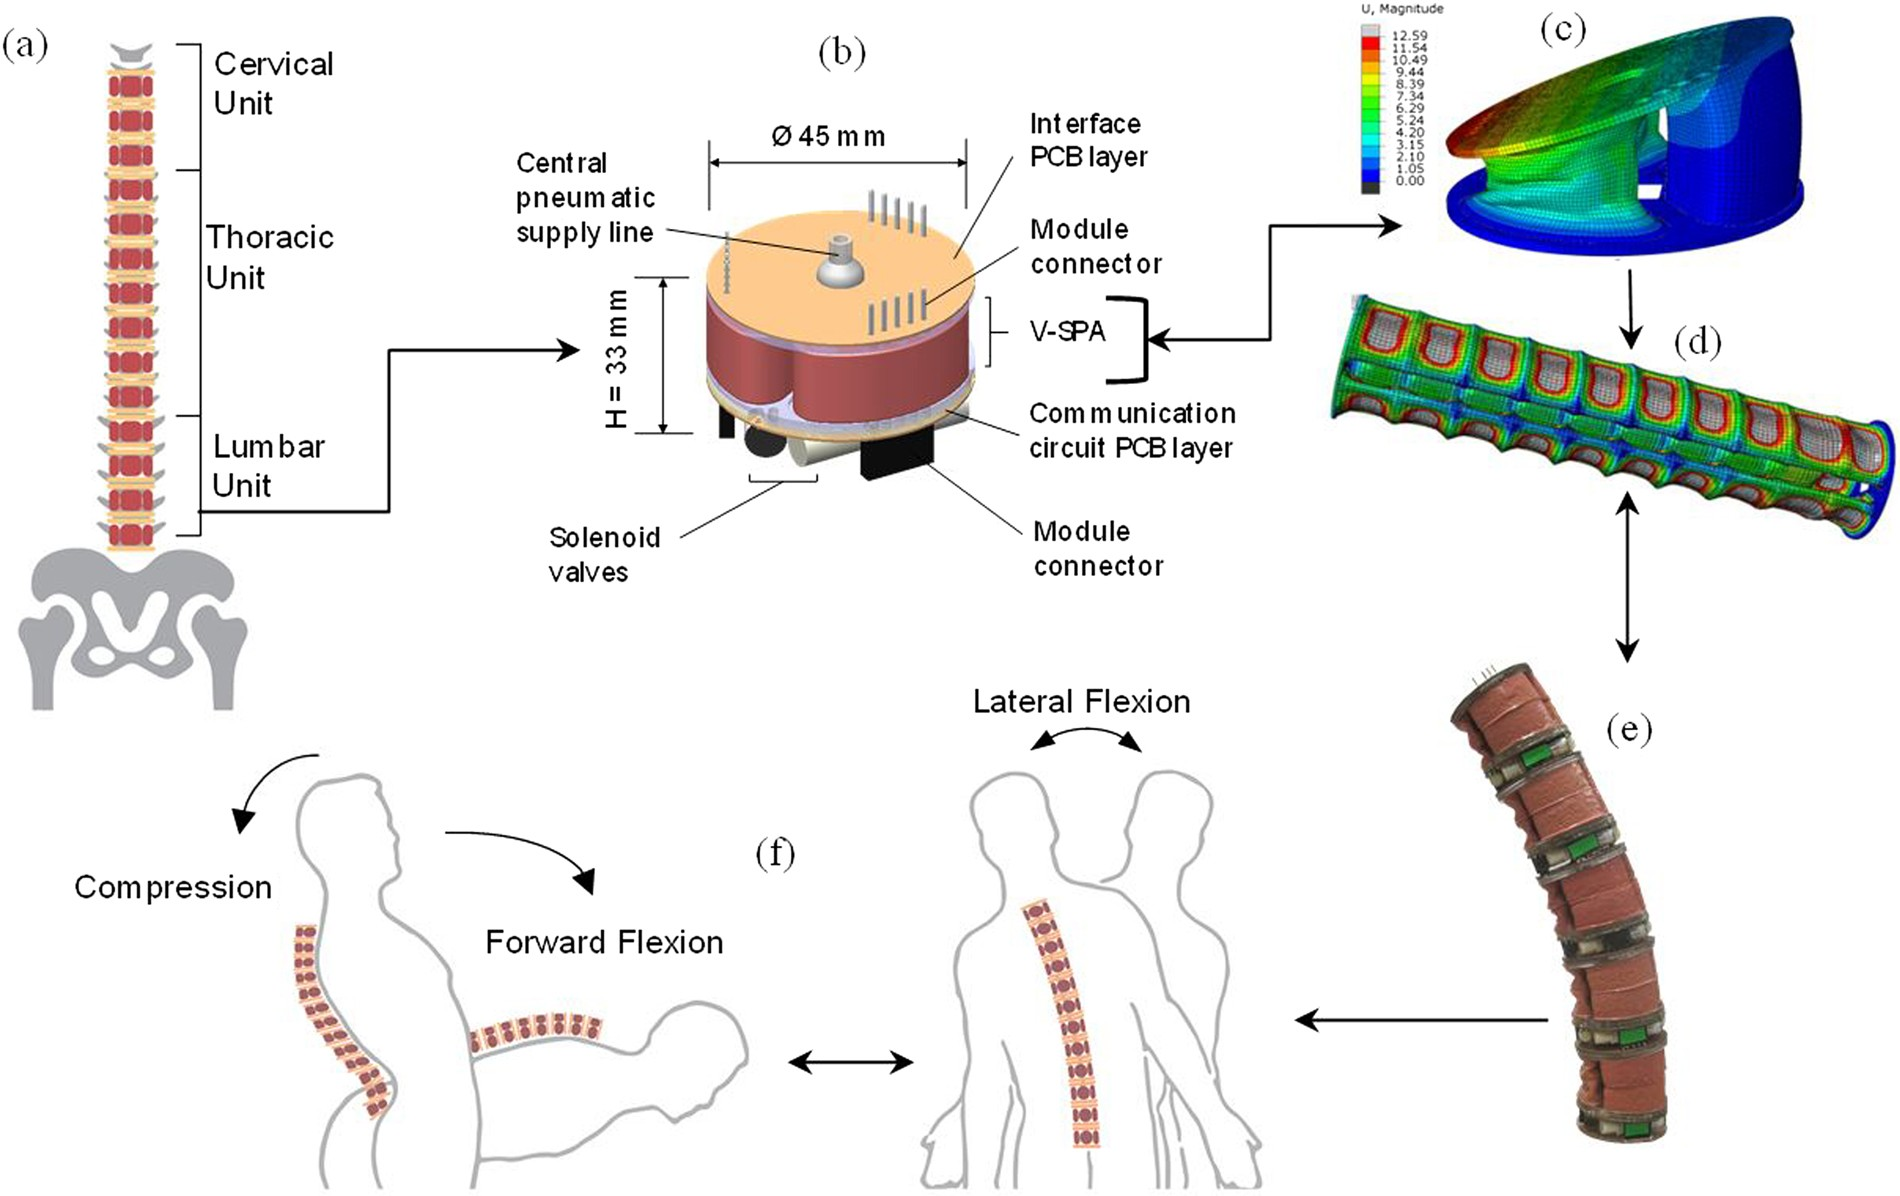 Design And Computational Modeling Of A Modular Compliant Robotic Air Conditioner Circuit D Conditioning Schematic 3 Furthermore Assembly For Human Lumbar Unit Spinal Cord Assistance Scientific Reports